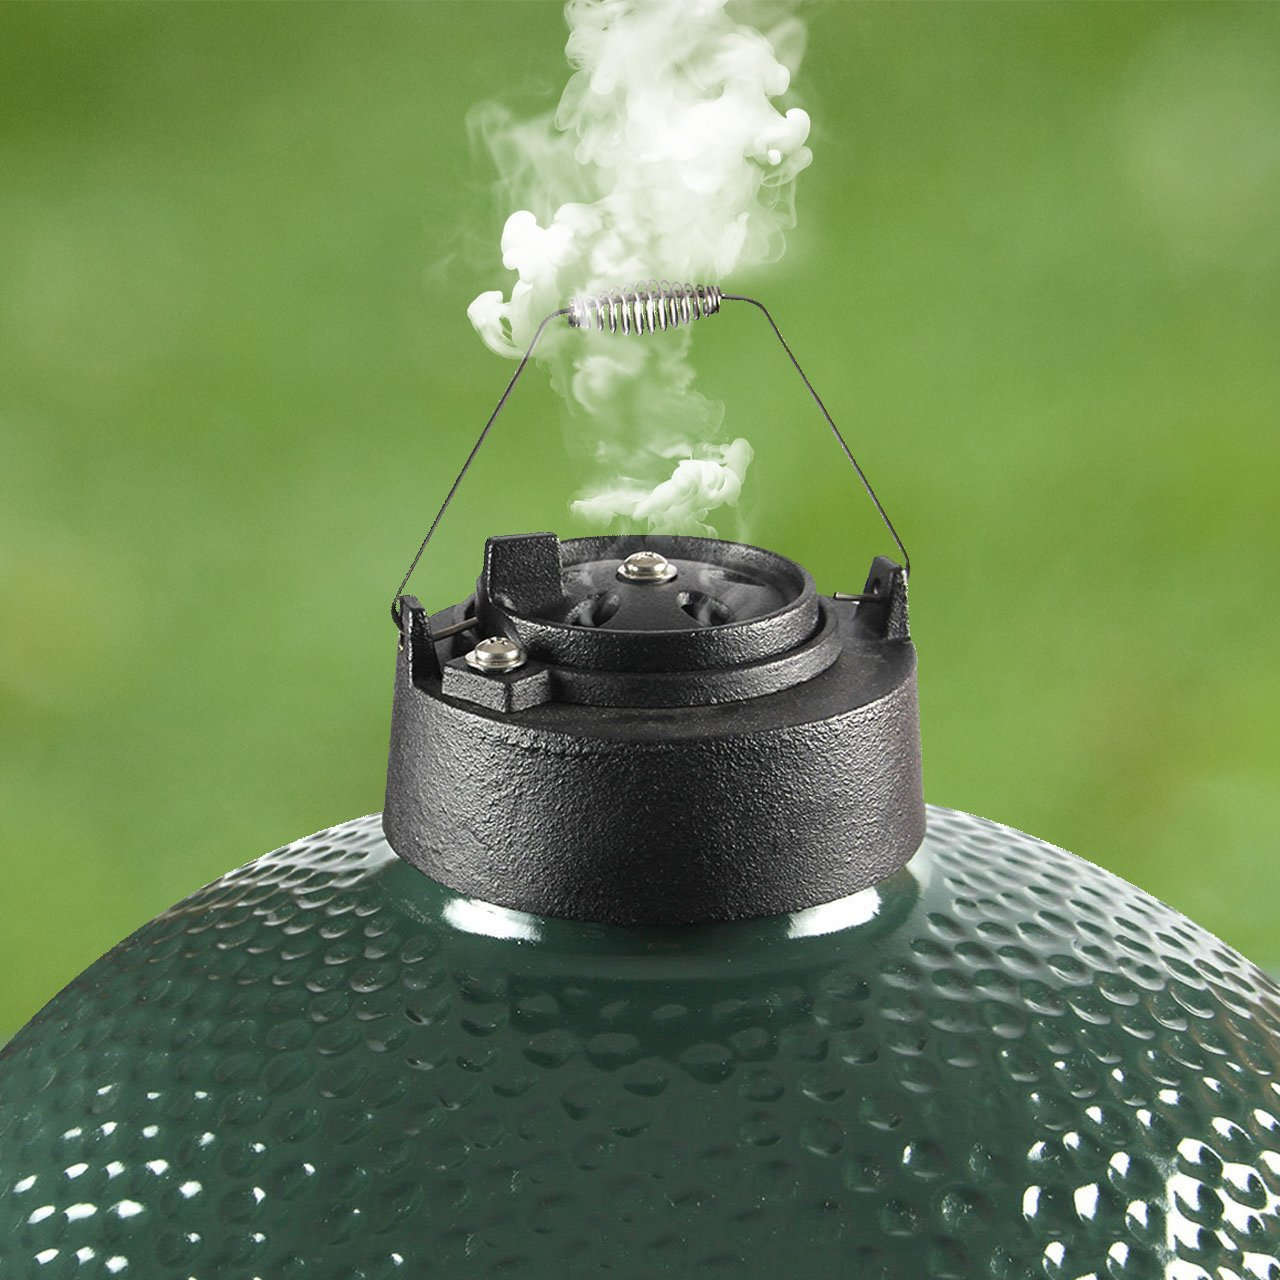 Dracarys Cast Iron Vented Chimney Cap for Big Green Egg Dual Function Metal Top,Big Green Egg Accessories Daisy Wheel for Large&Medium Big Green Egg Damper Chimney Cap Big Green Egg Replacement Parts by Dracarys